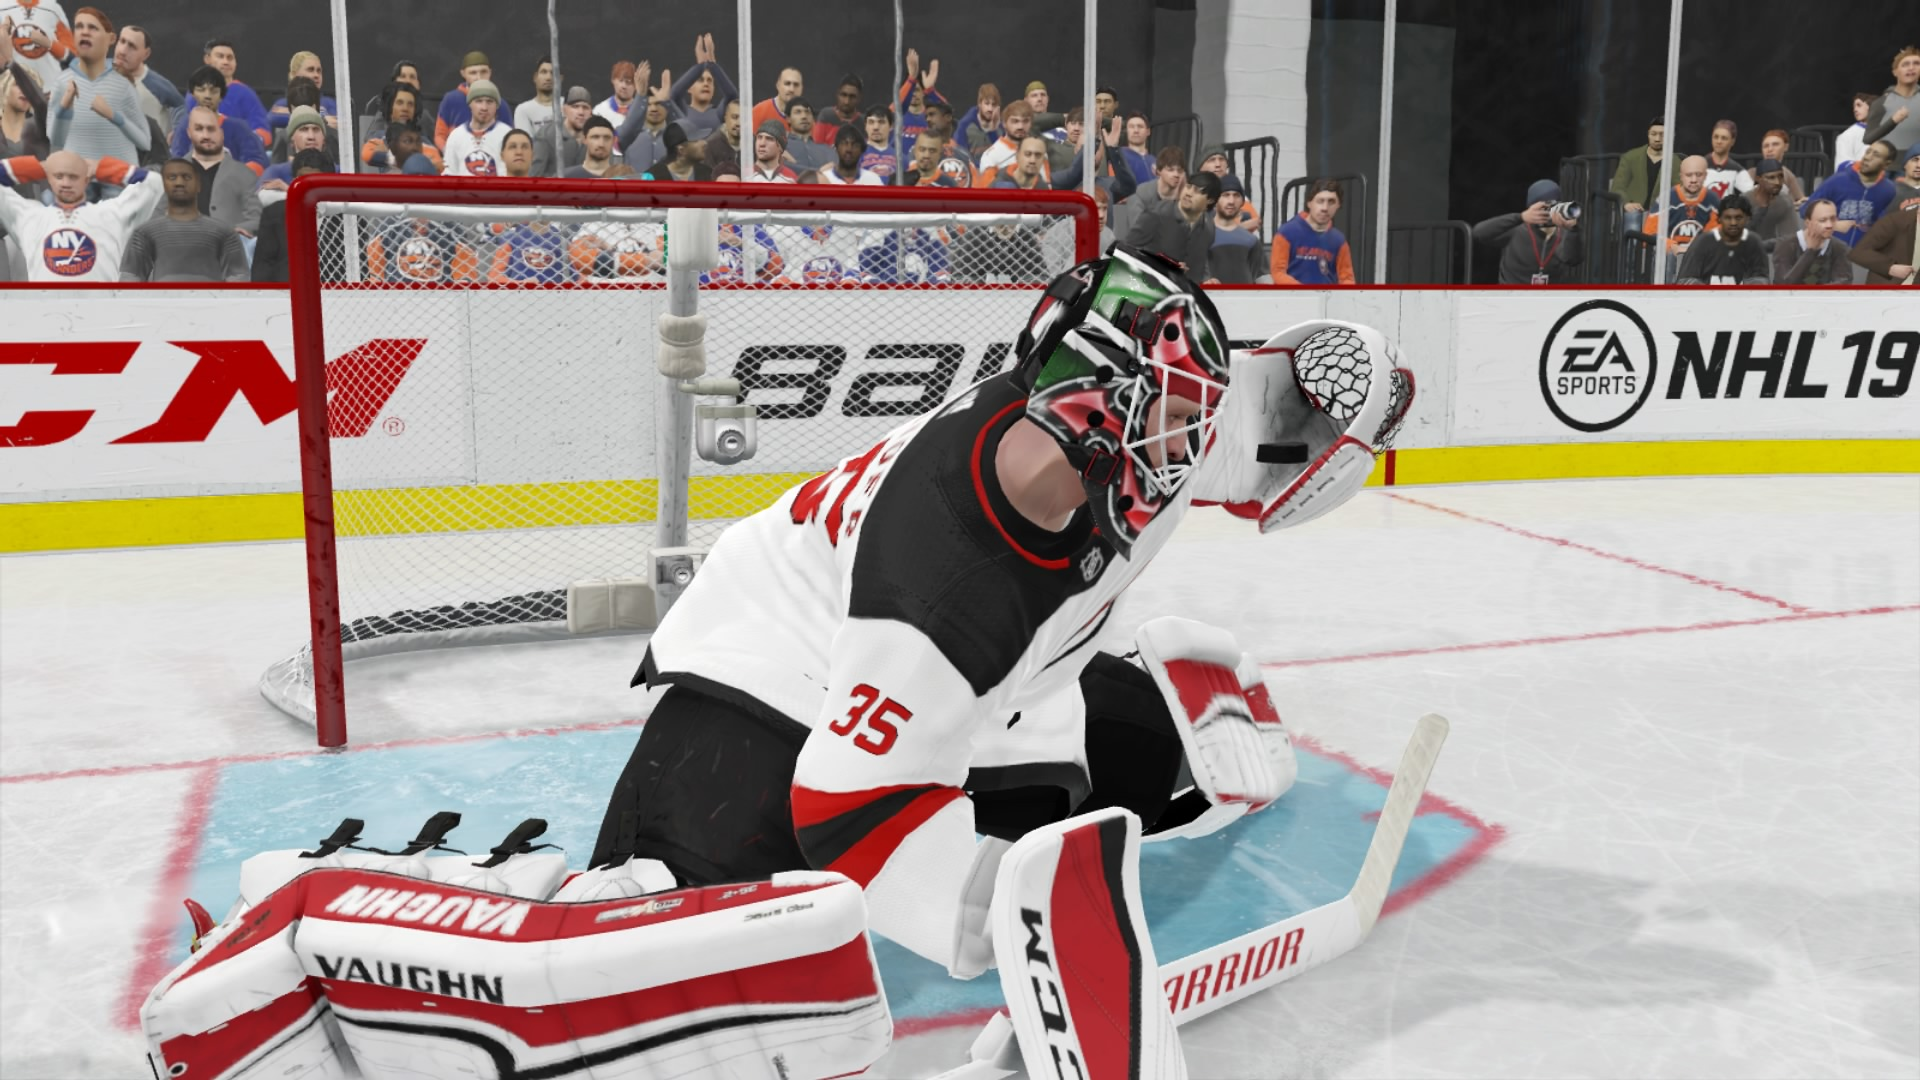 new concept cf094 abff6 NHL 19 season sim: Who wins the 2018 - 2019 NHL Stanley Cup ...